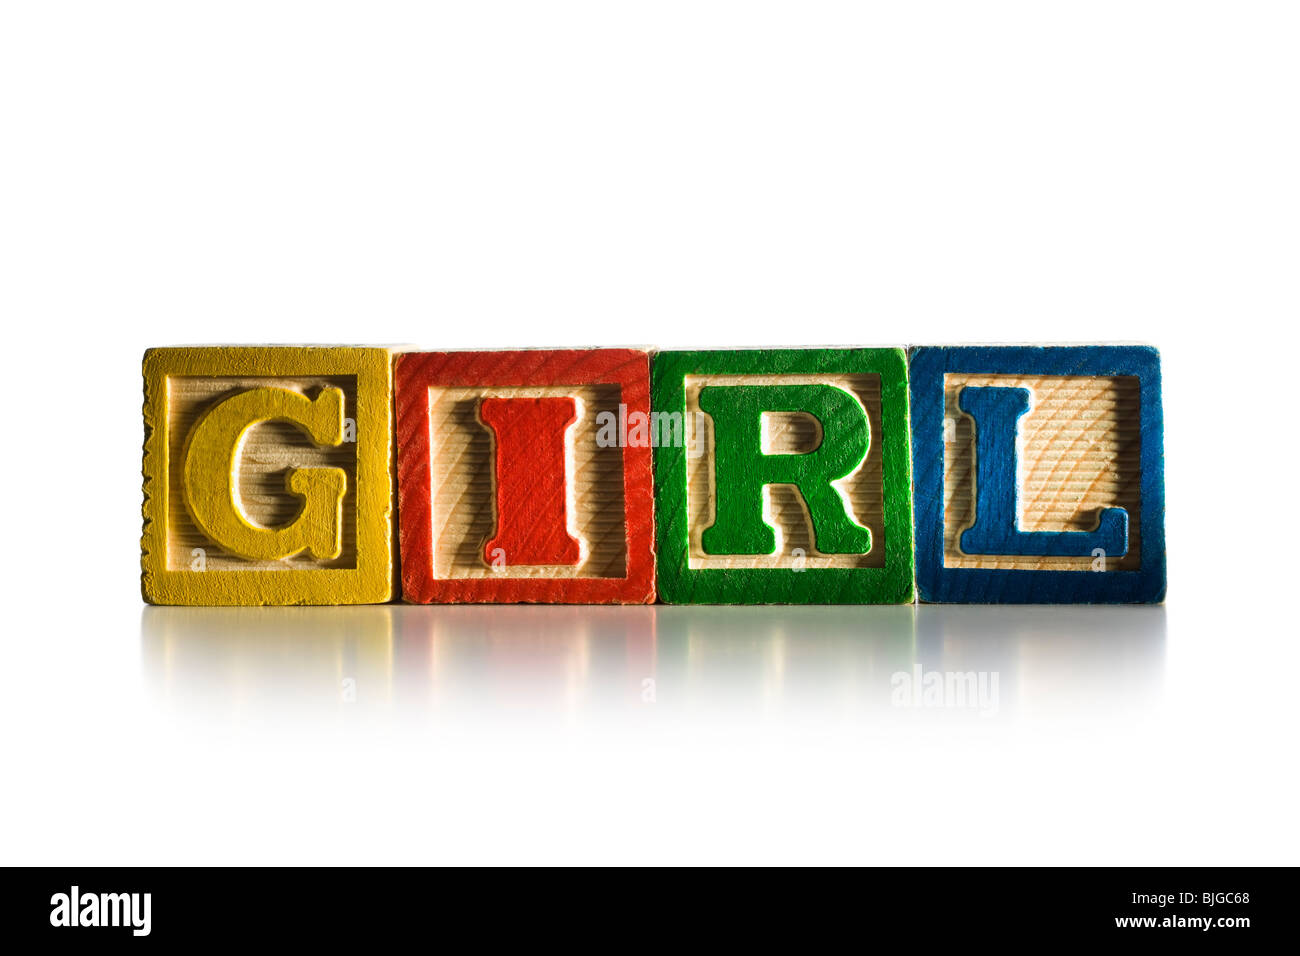 nursery blocks spelling 'girl' - Stock Image